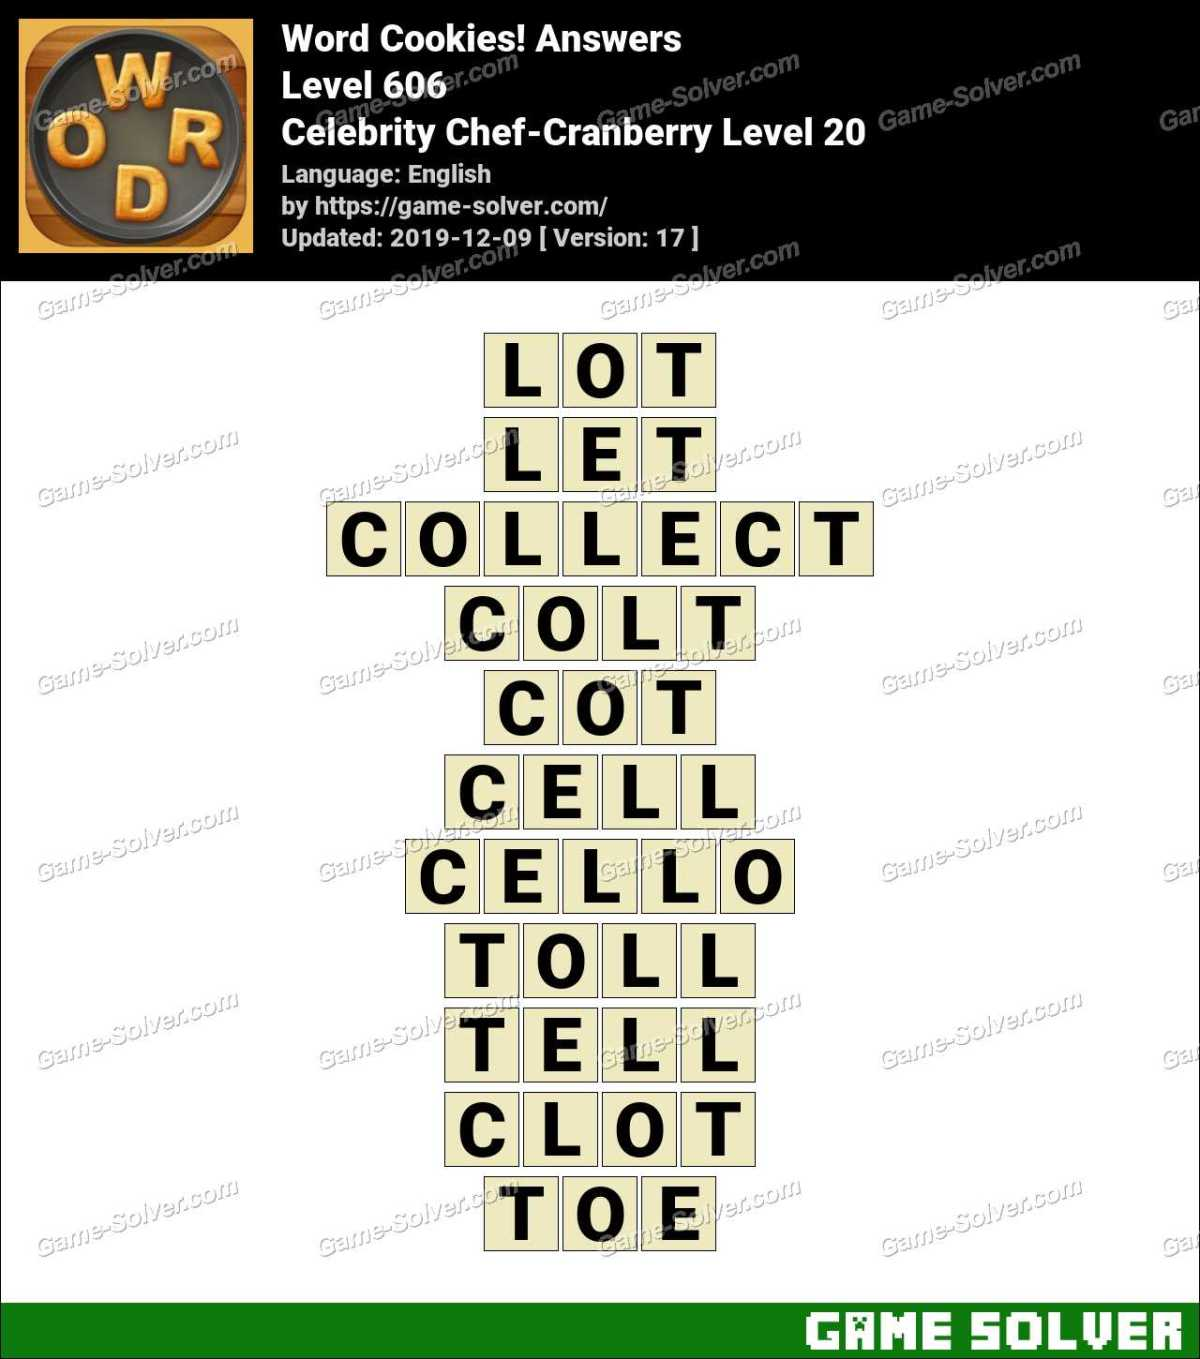 Word Cookies Celebrity Chef-Cranberry Level 20 Answers